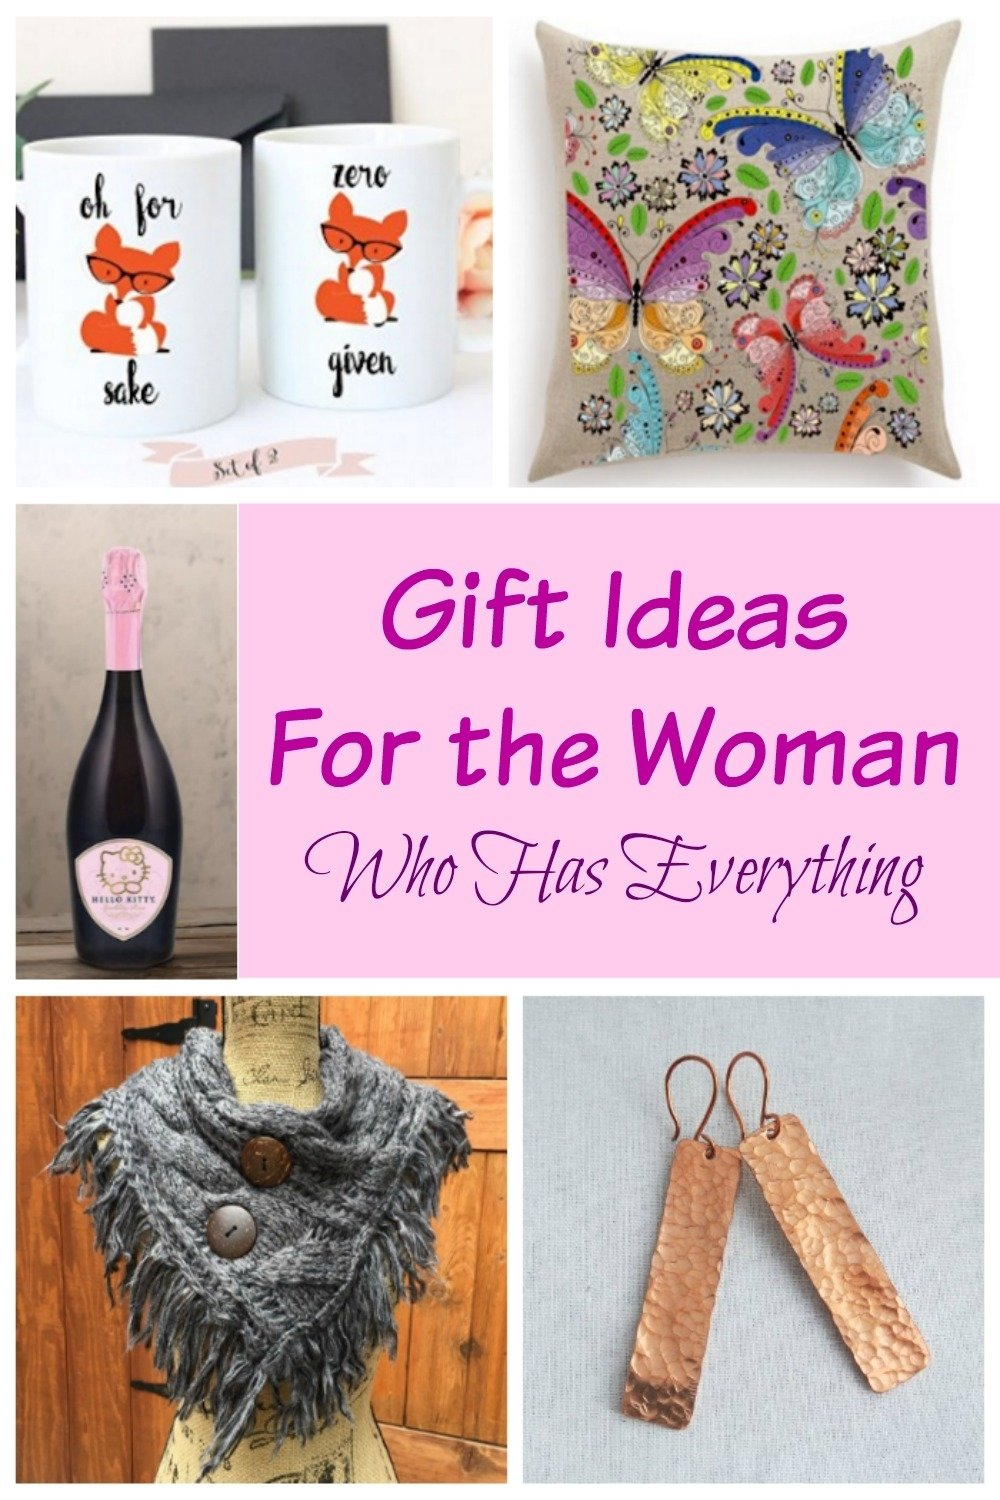 10 Great Gift Ideas For Older Women gift ideas for the women who has everything 2021